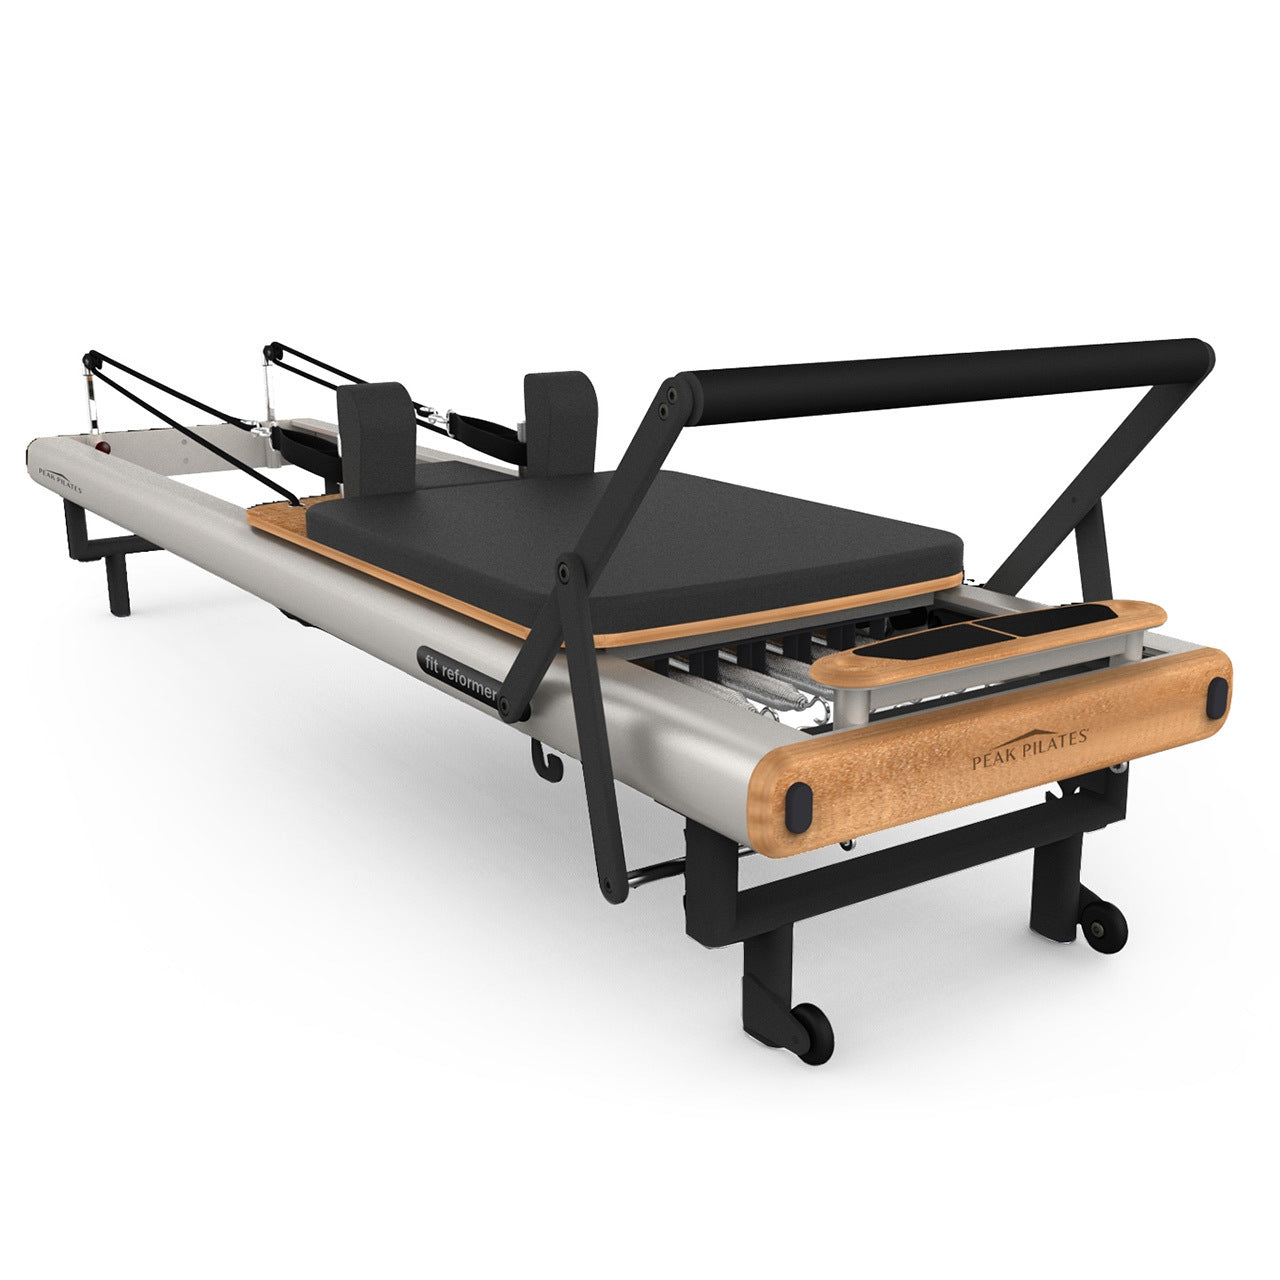 Peak Pilates® fit™ Reformer - Pilates Reformers Direct